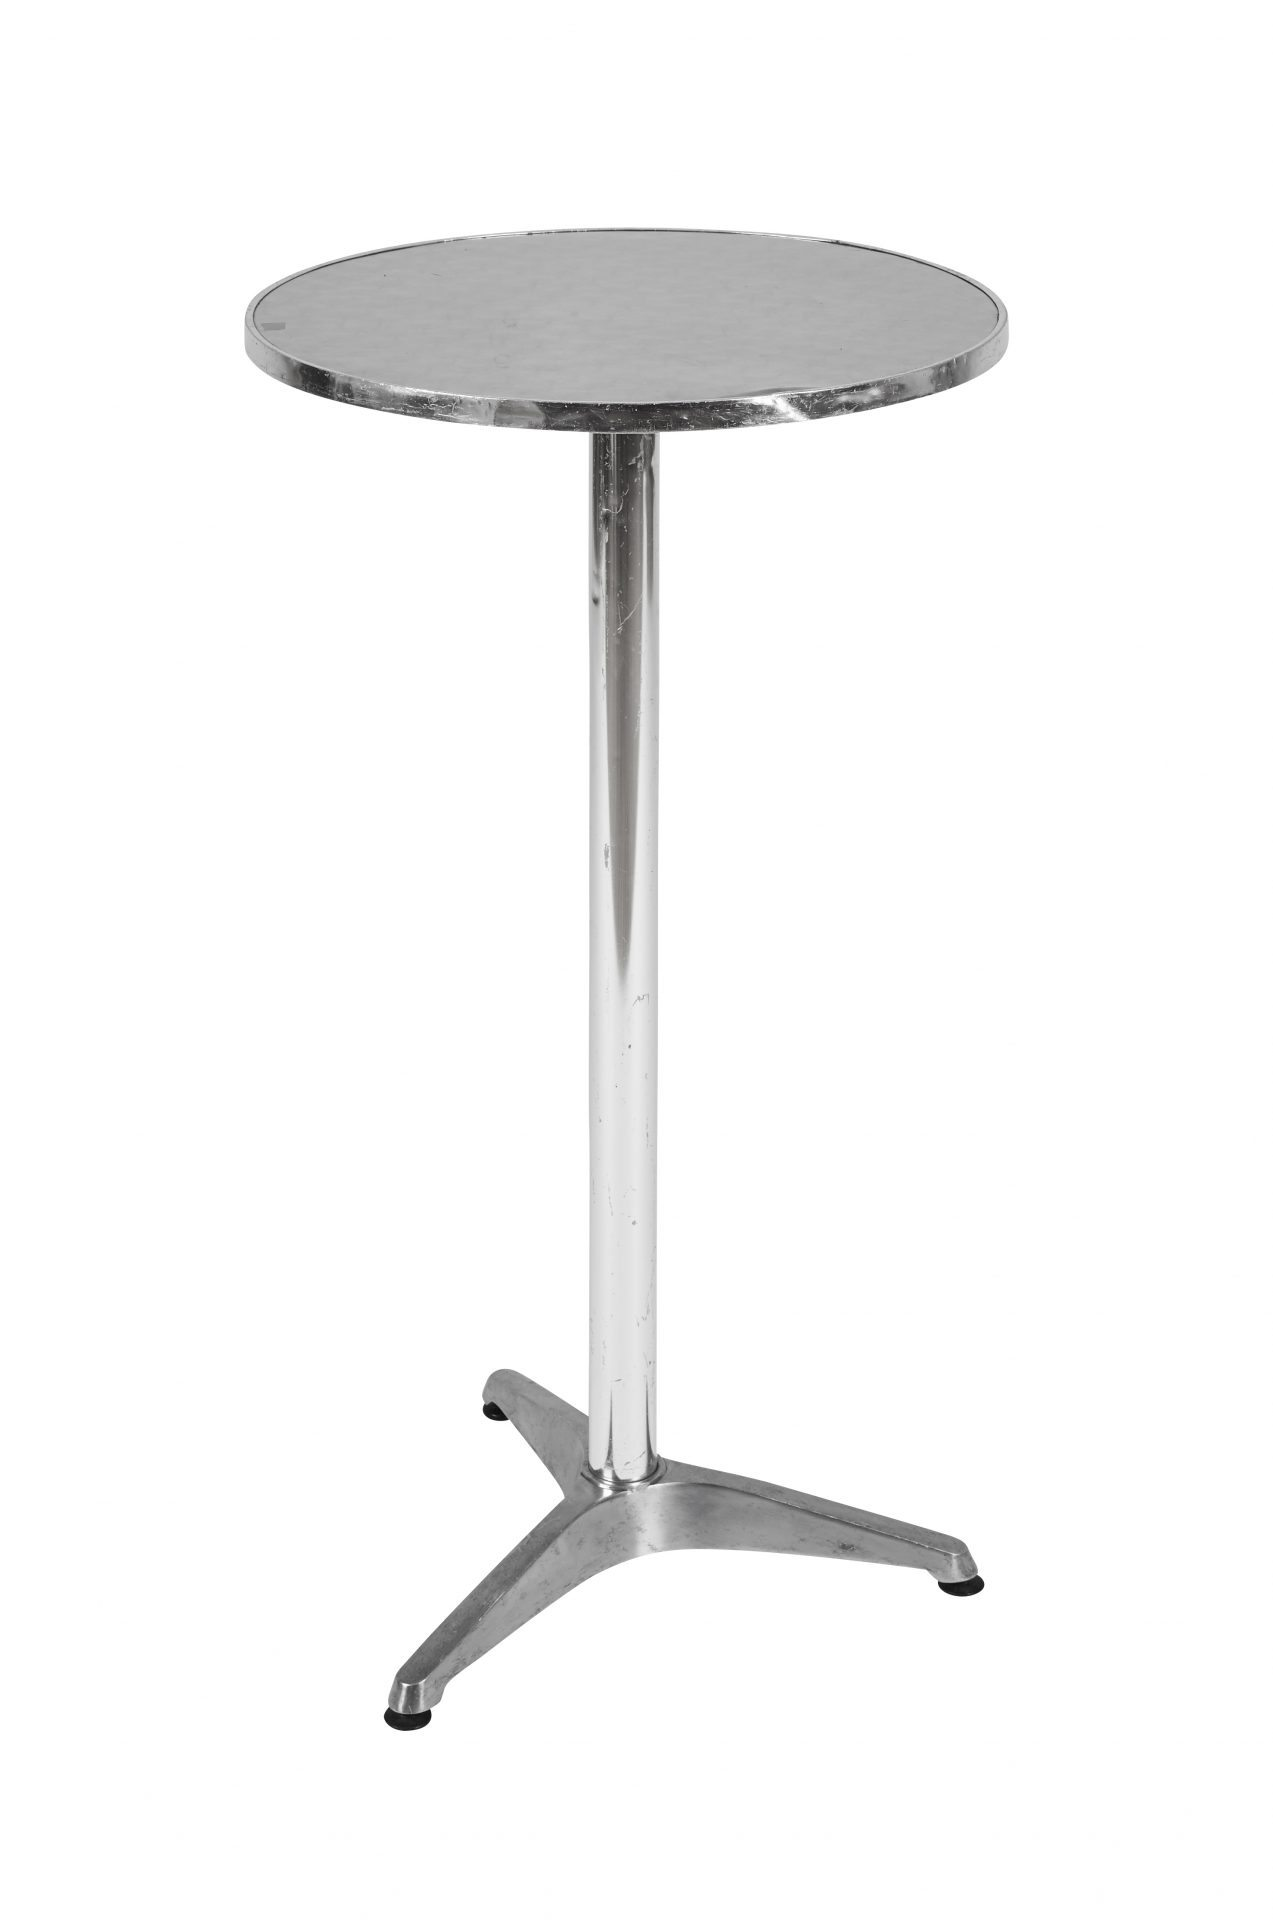 Aluminium single tier poseur table